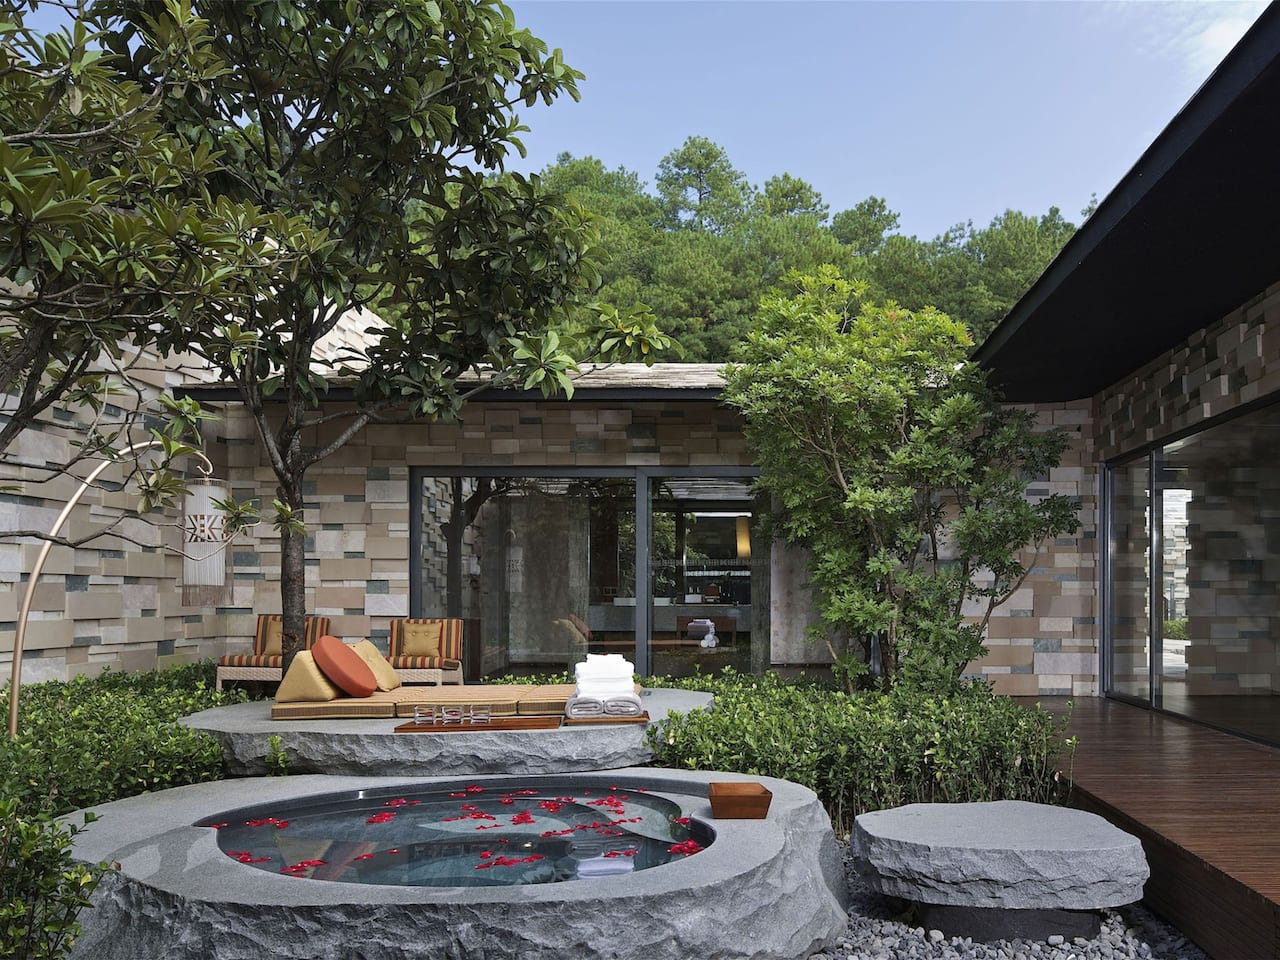 Residential Villa Courtyard And Spring Pool